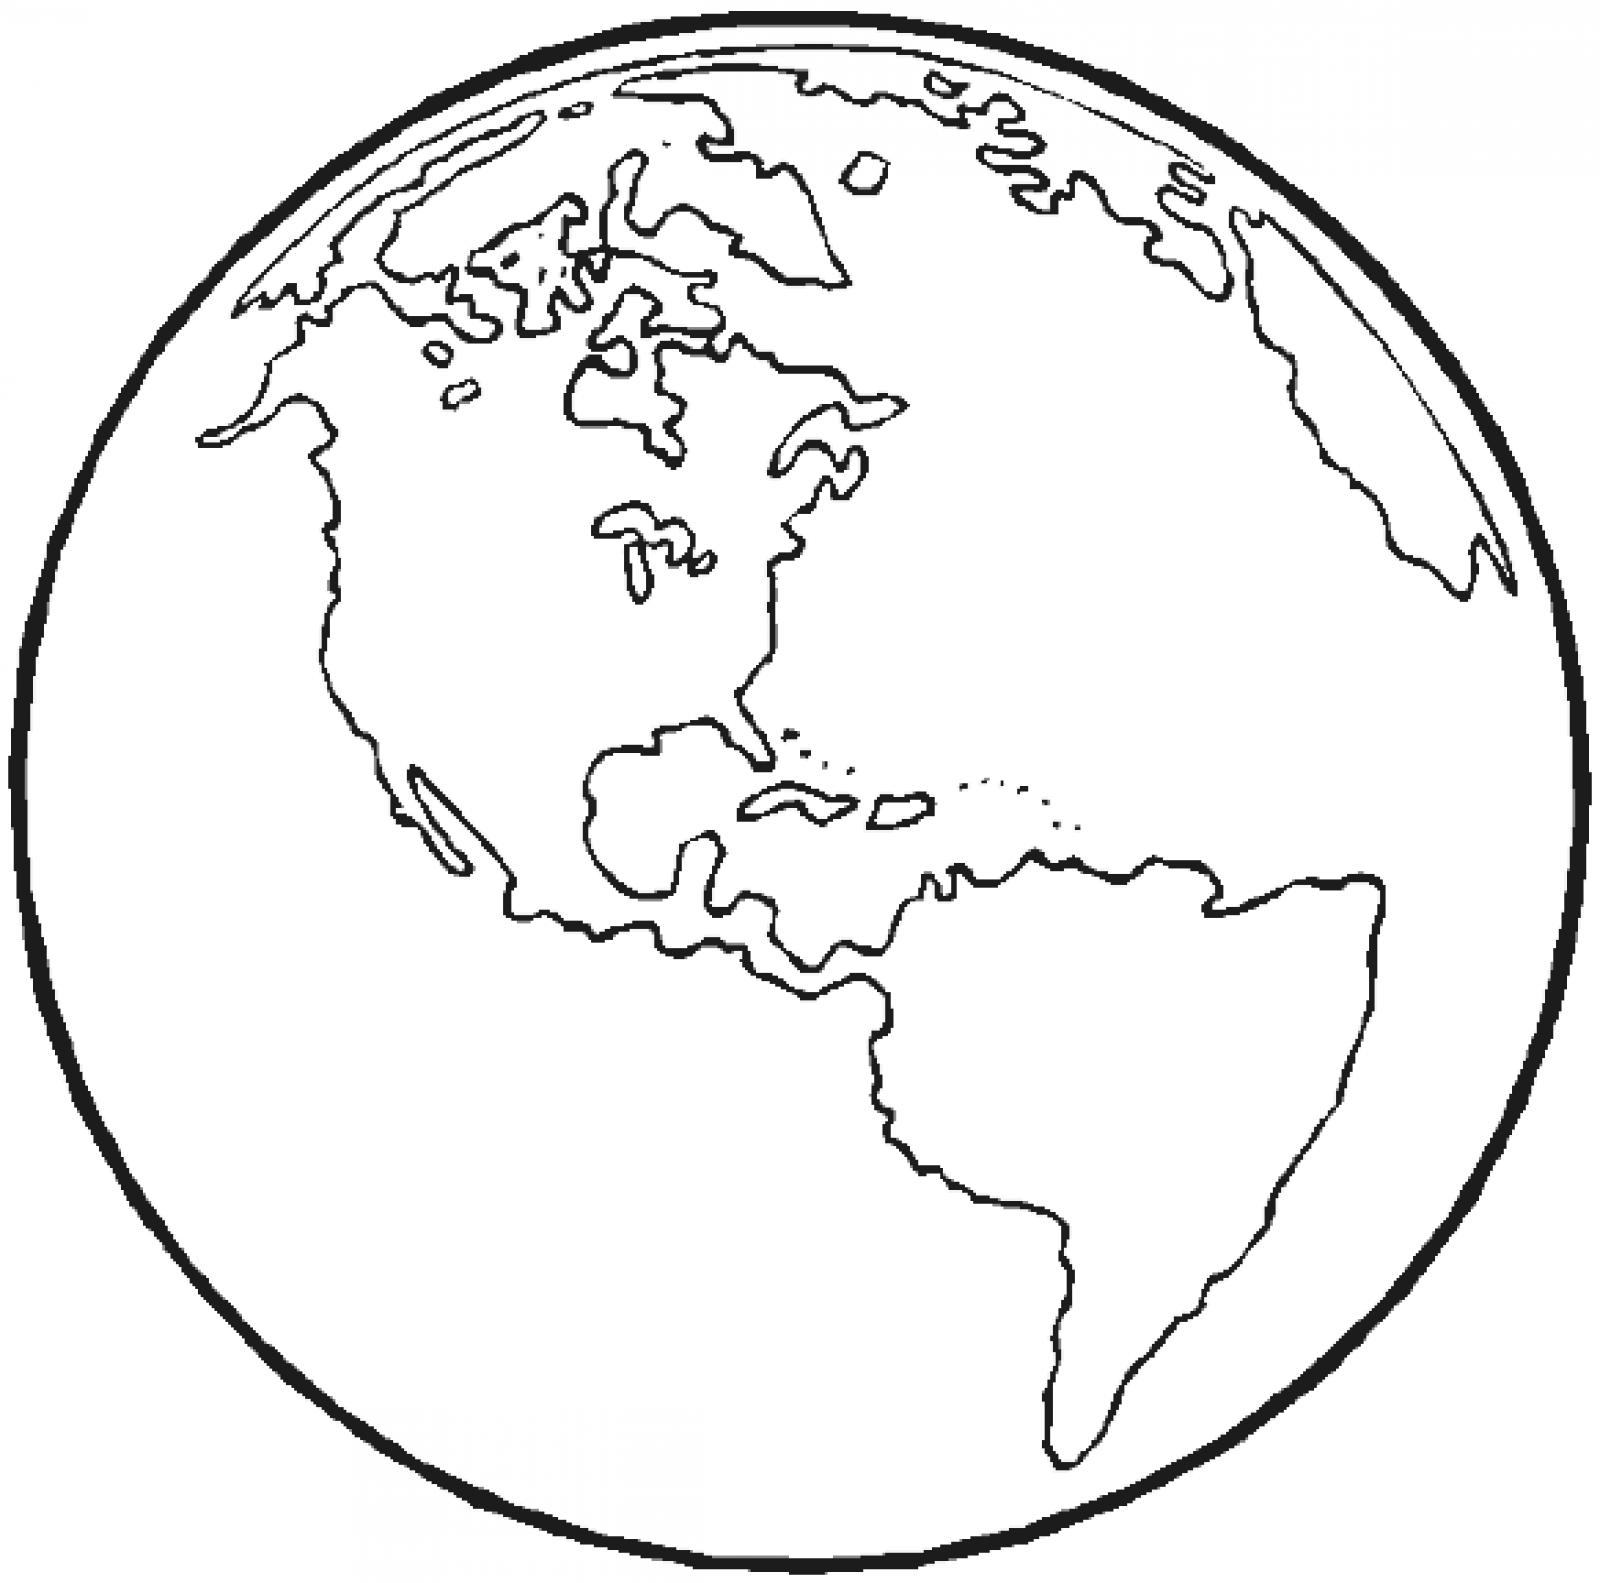 coloring pictures of earth get this printable earth coloring pages dqfk12 pictures of earth coloring